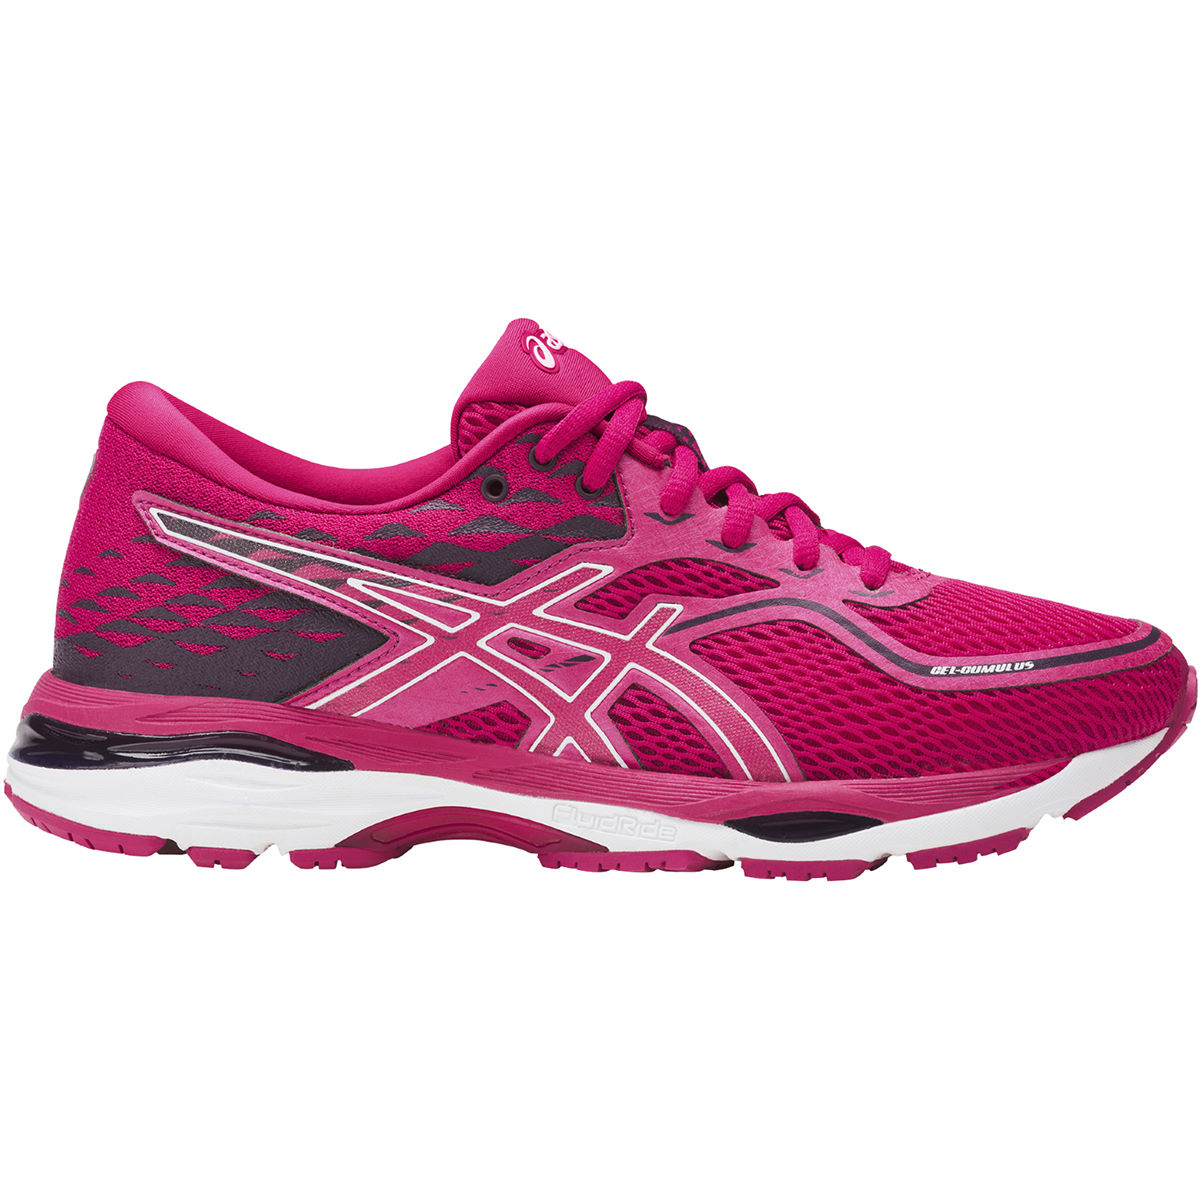 Women s Asics Gel Cumulus 19 - John Buckley Sports 78d701330c